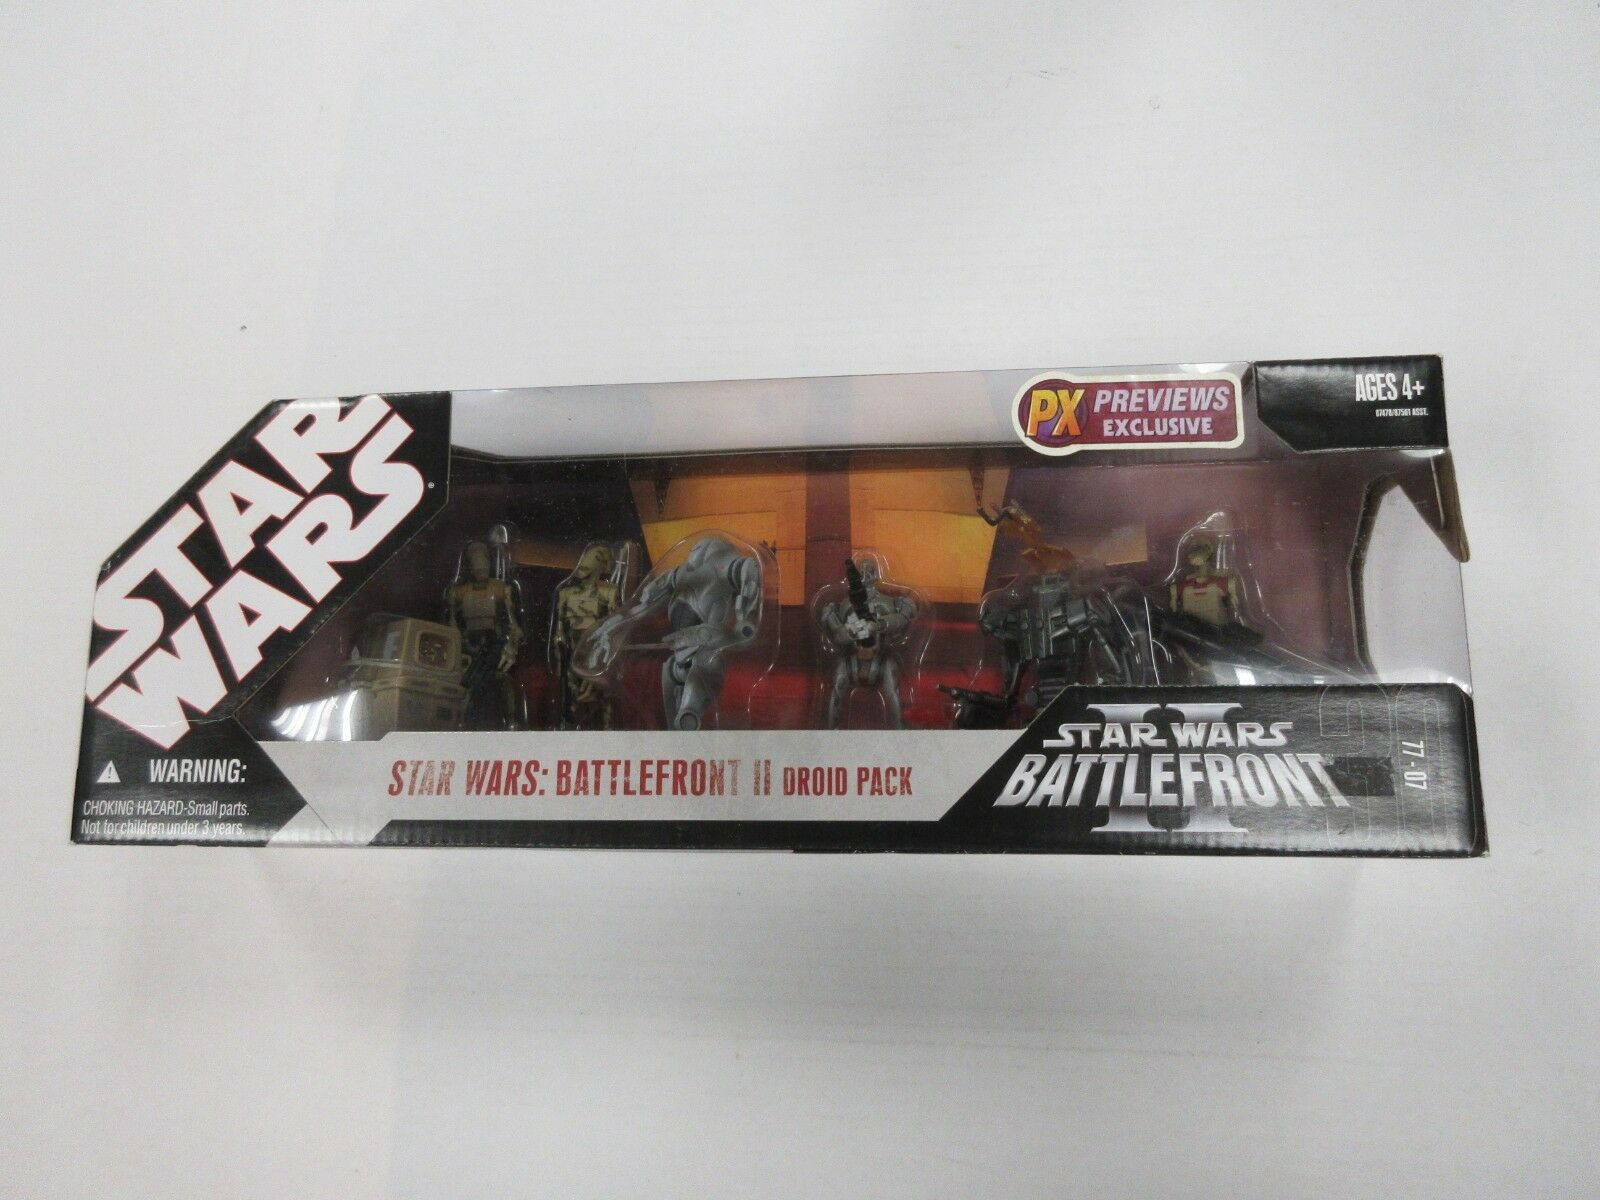 HASBRO estrella guerras PREVIEWS EXCLUSIVE BATTLEdavanti 2 DROID 7 cifra SET NIP SEALED